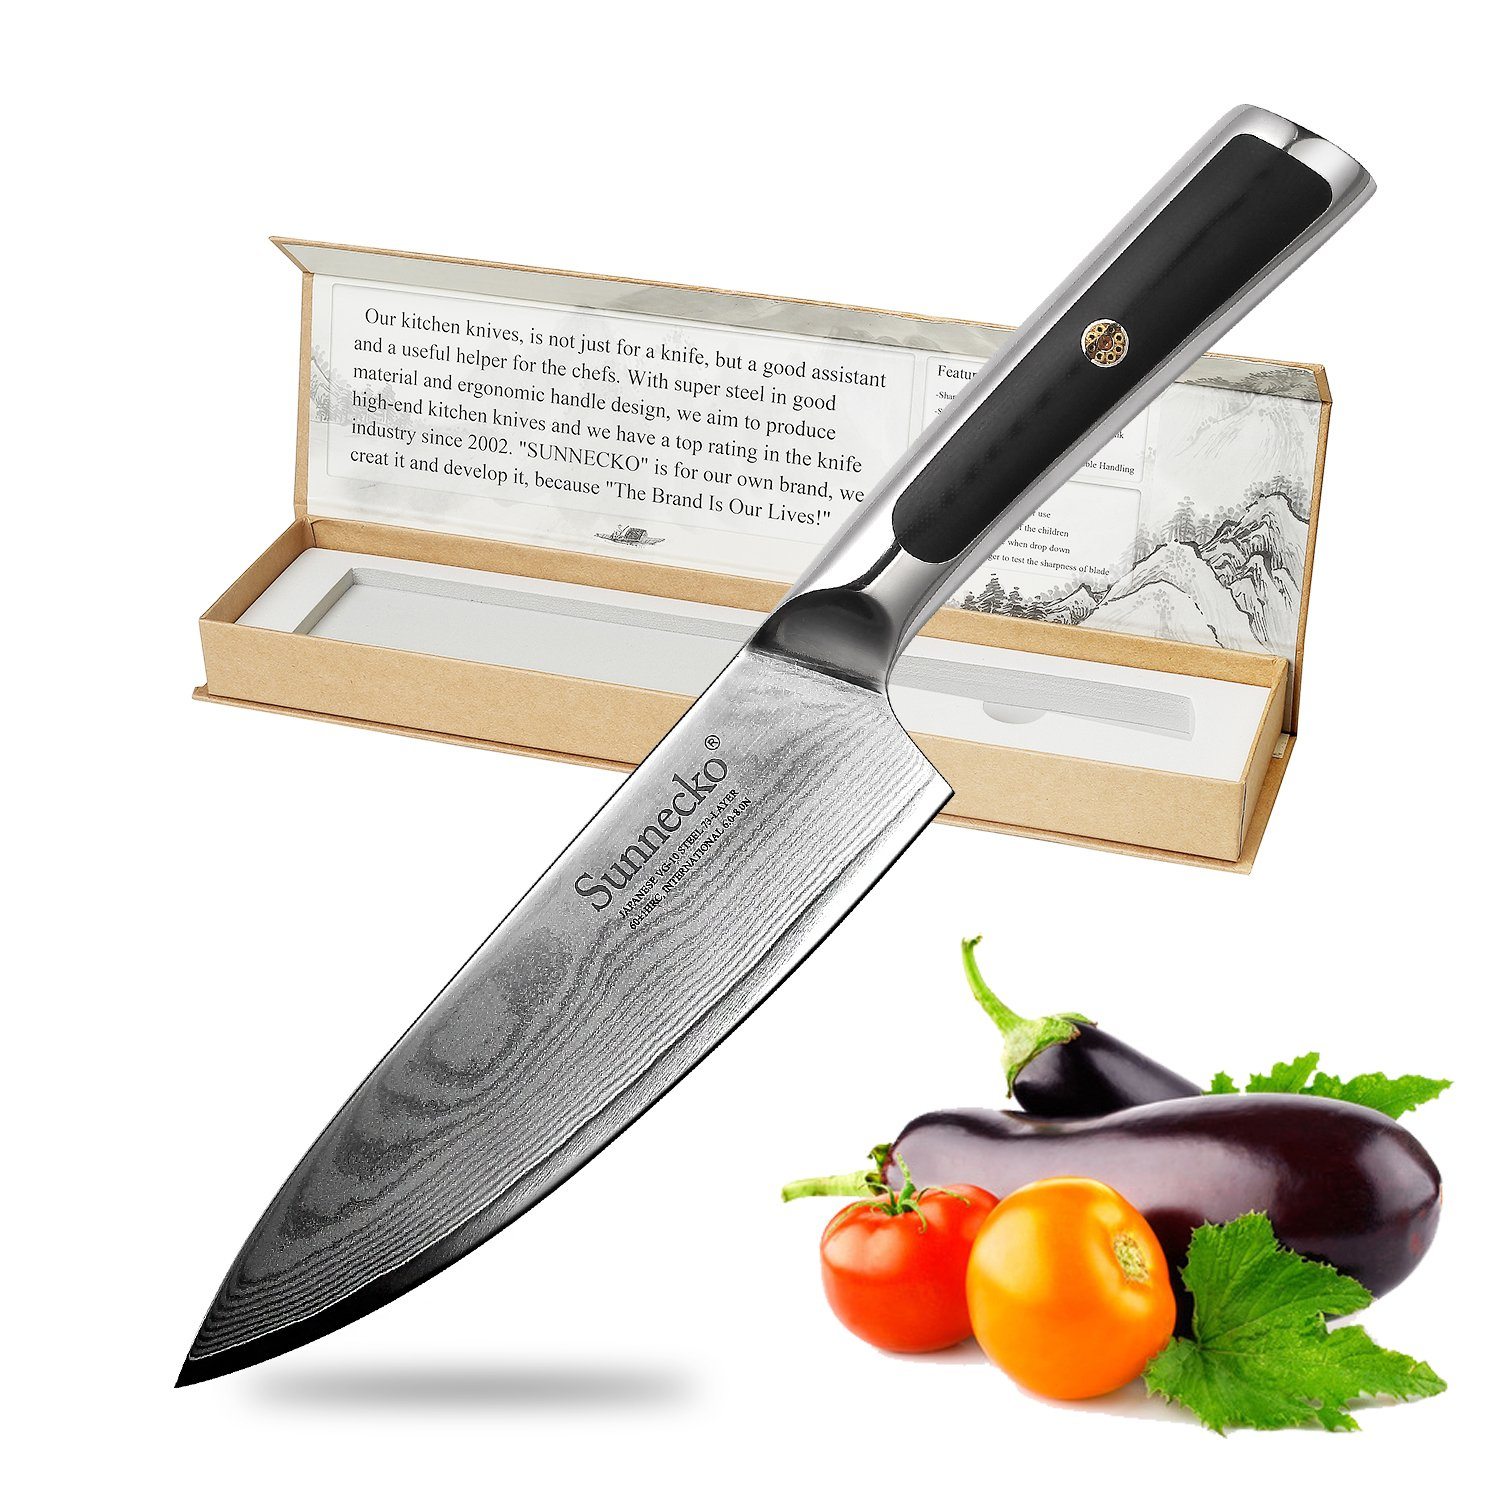 Chef Knife-6.5inch High Carbon Stainless Steel Kitchen Knife with Unique Ergonomic Handle,Quality Warranty,Razor Sharp,Best Kitchen Gift for Cooking Lovers and Chefs by SUNNECKO